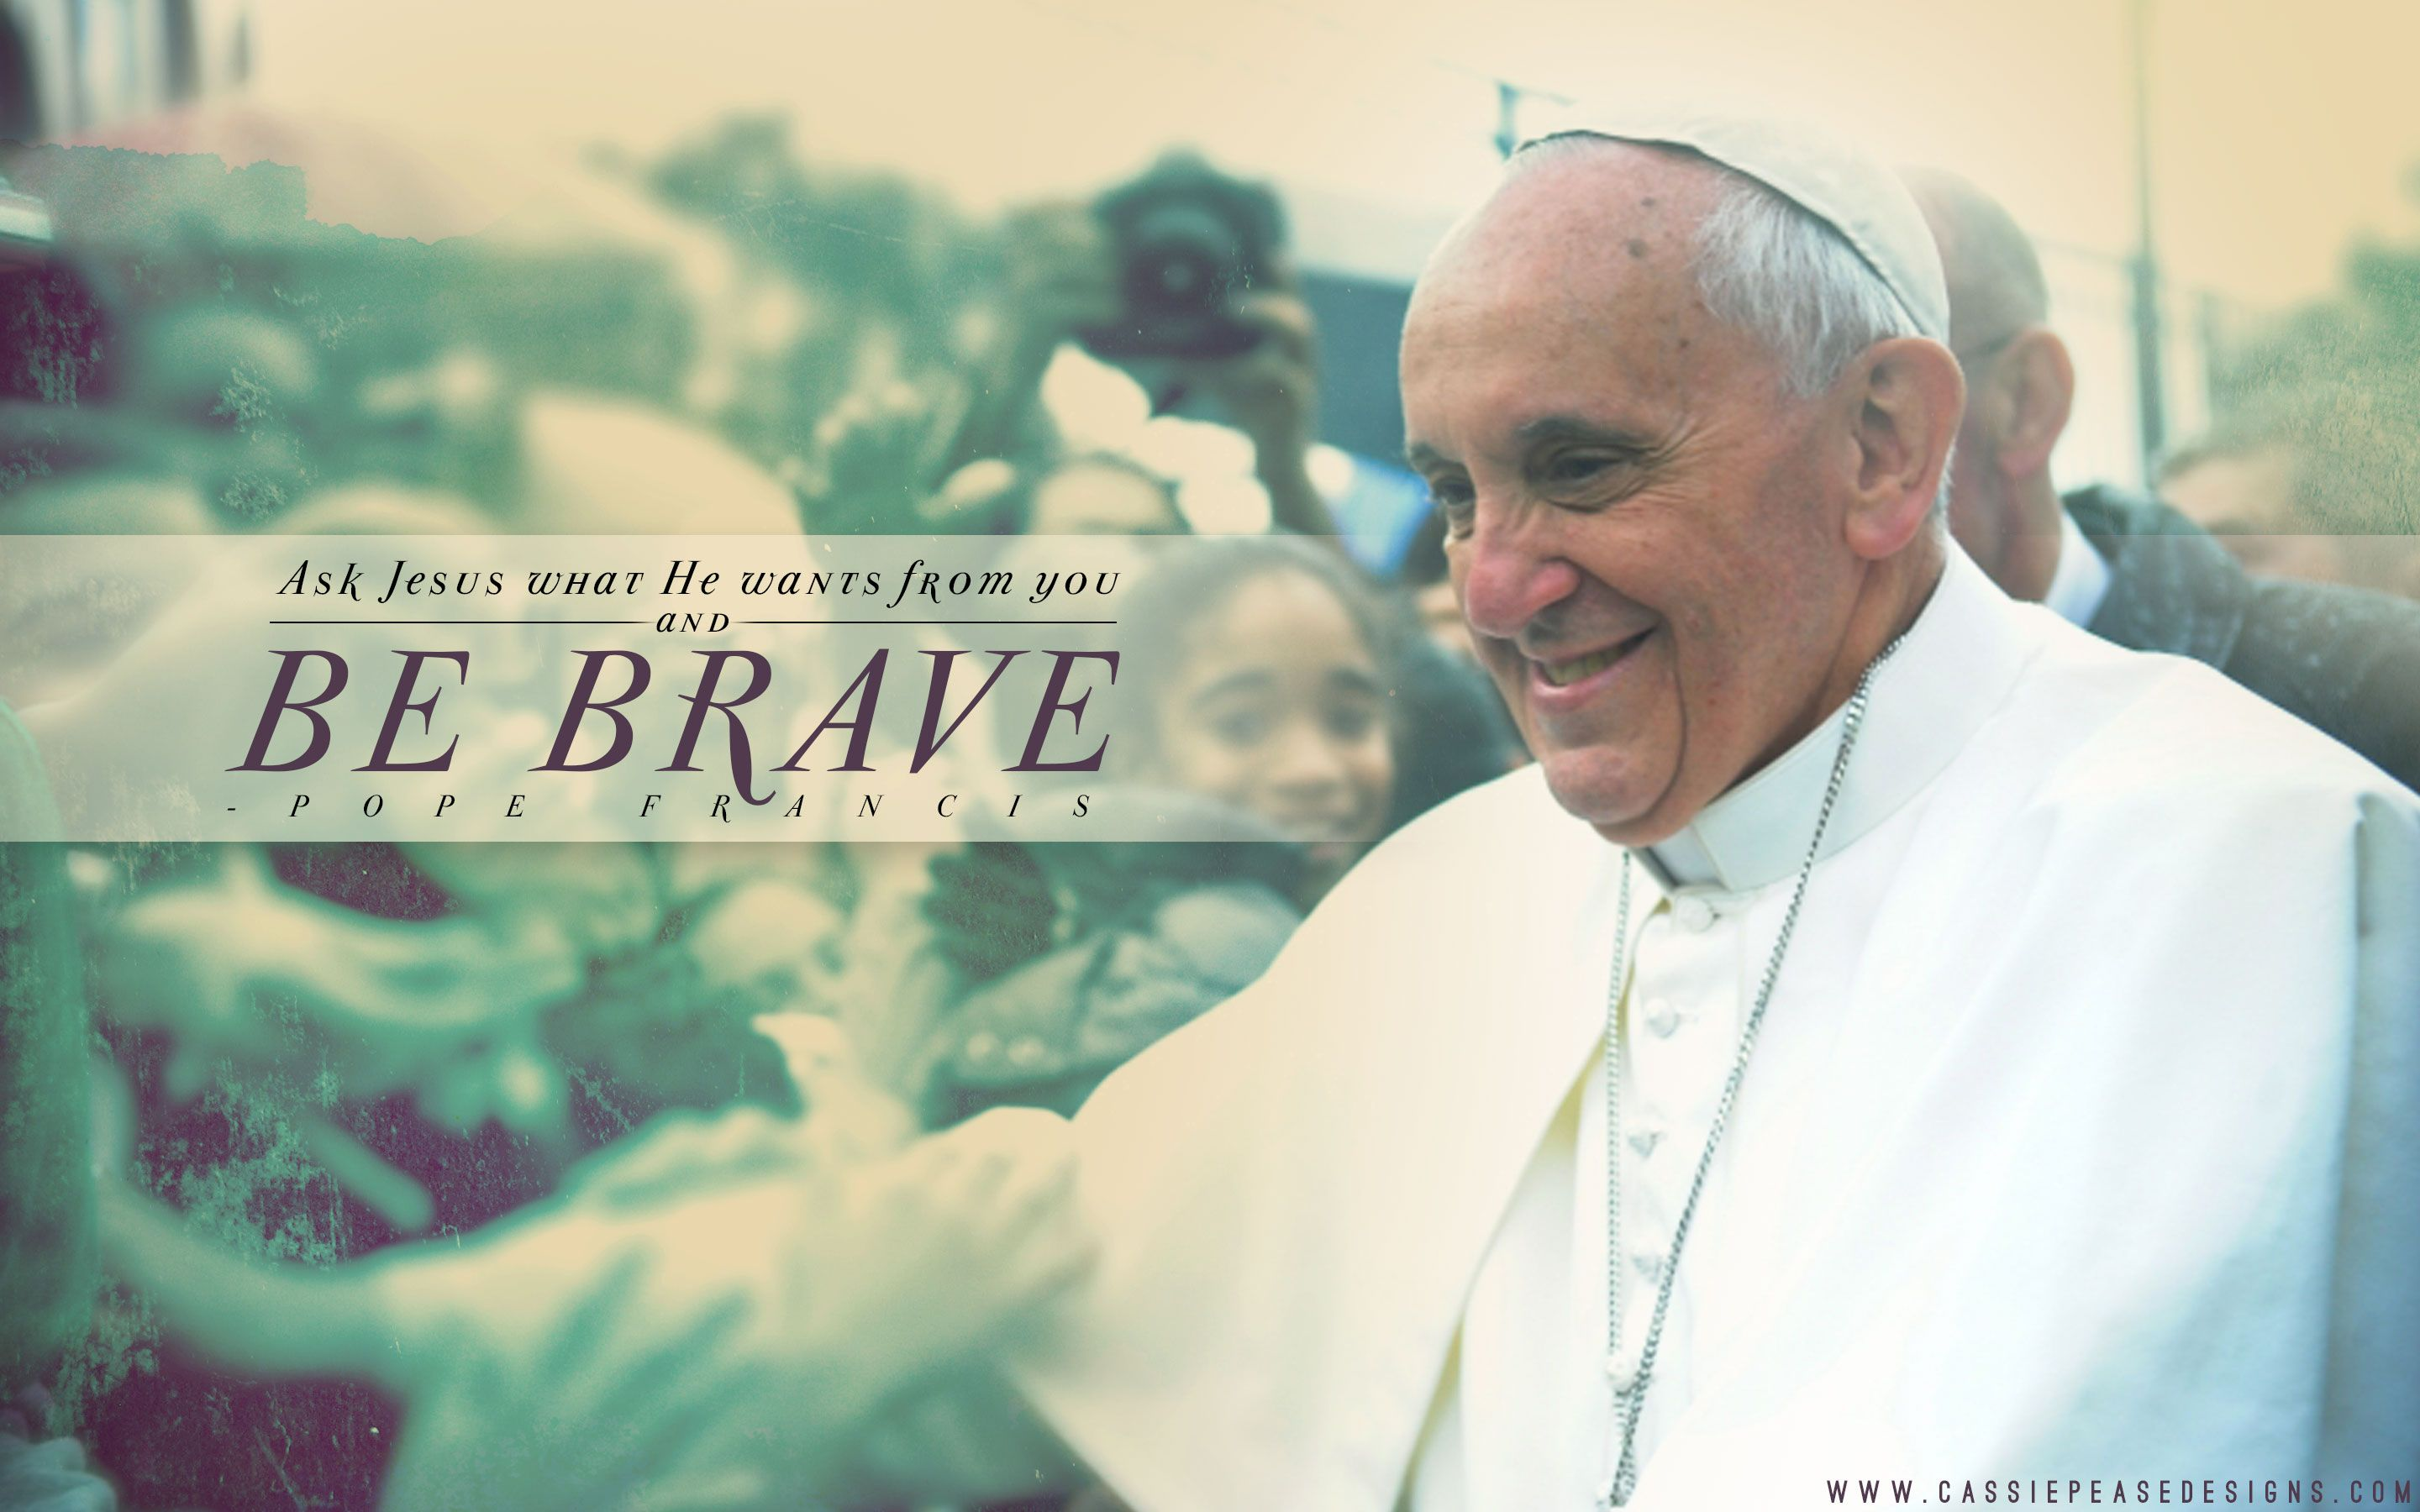 Pope Francis Be Brave Desktop Wallpaper Cassie Pease Designs Catholic All Year Pope Francis Catholic